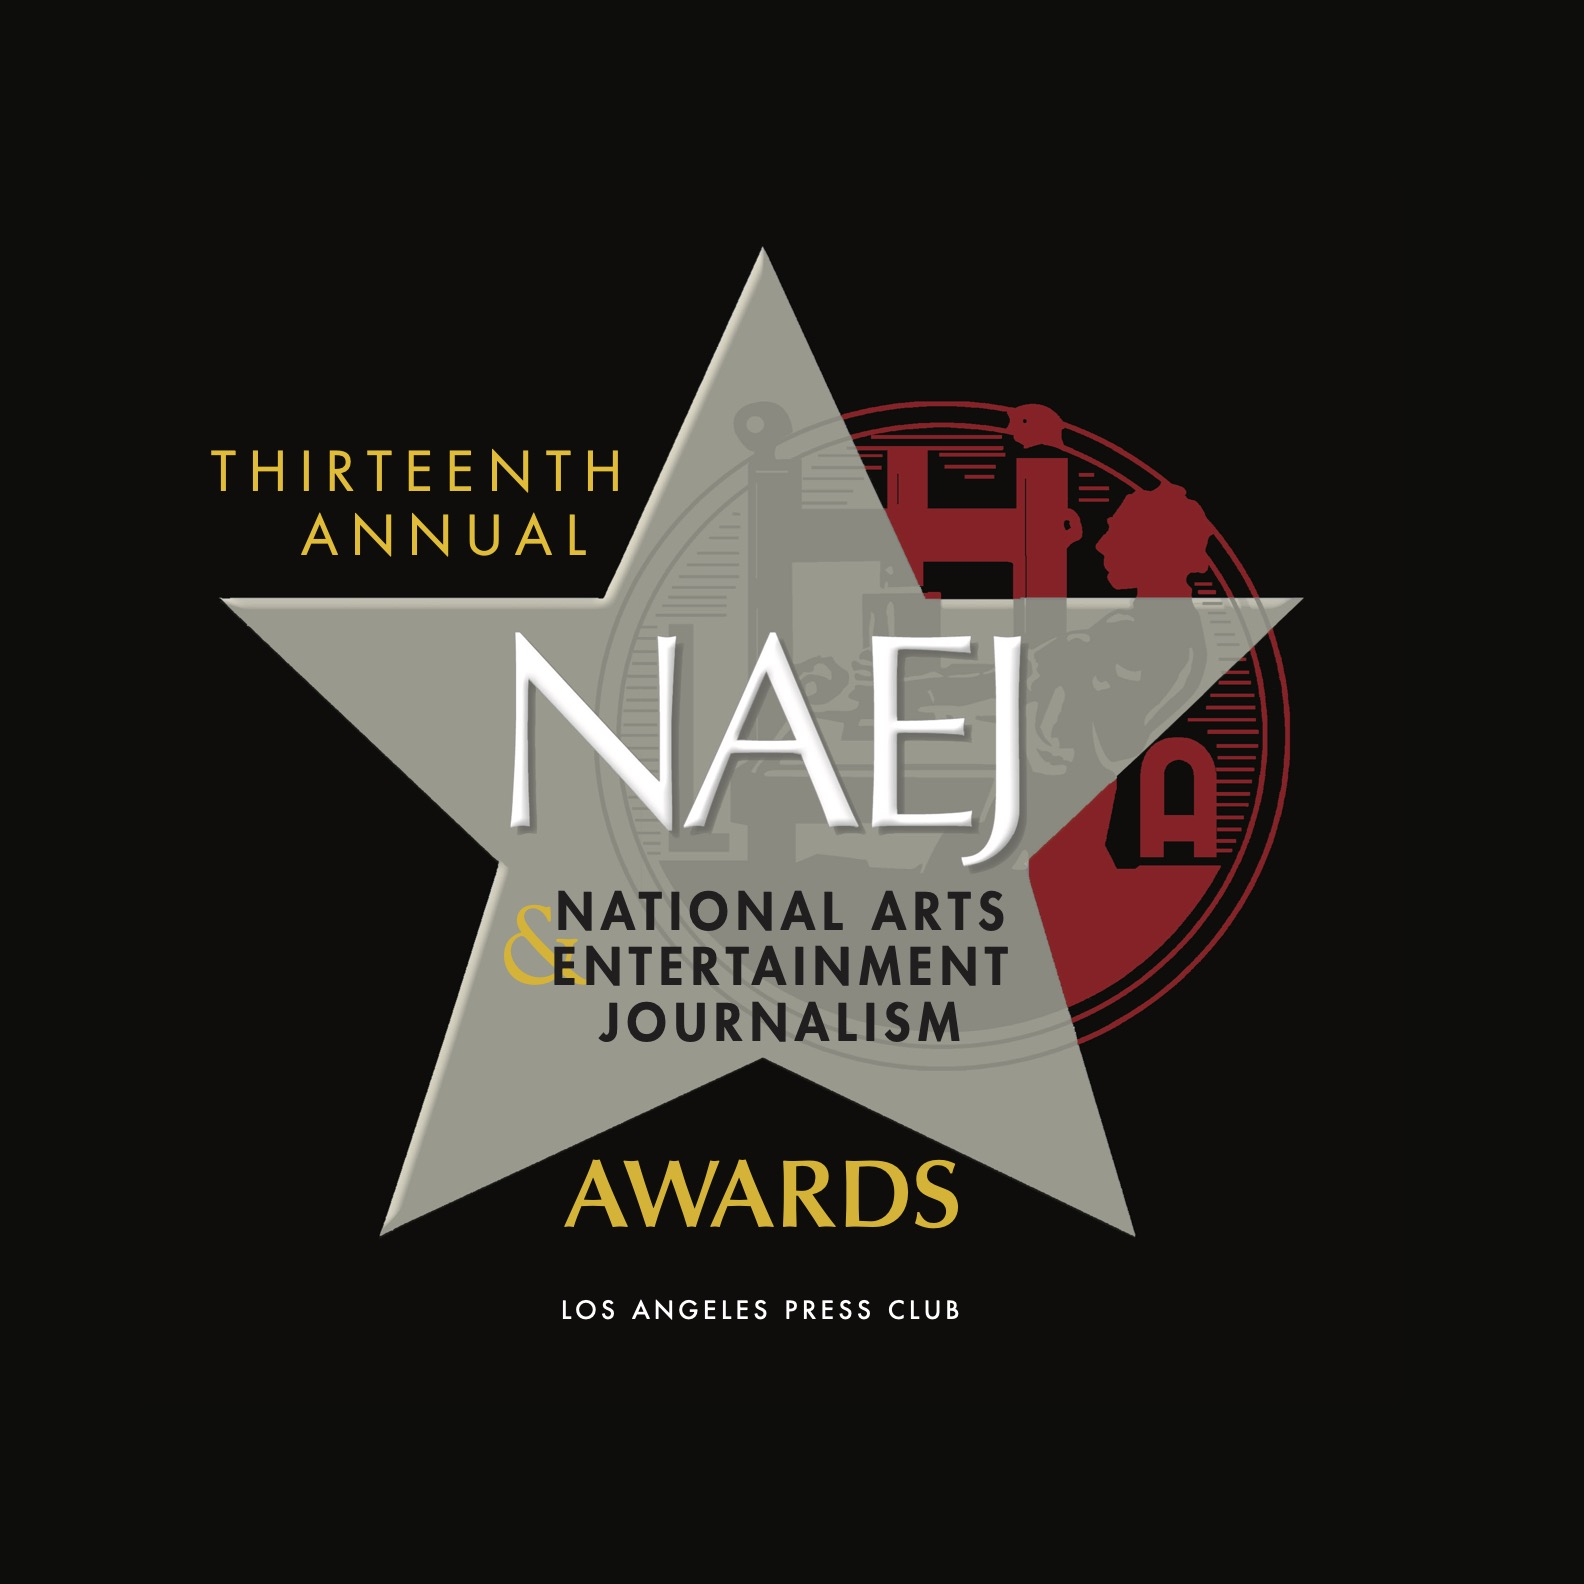 NAEJ awards National Arts Entertainment Journalism awards